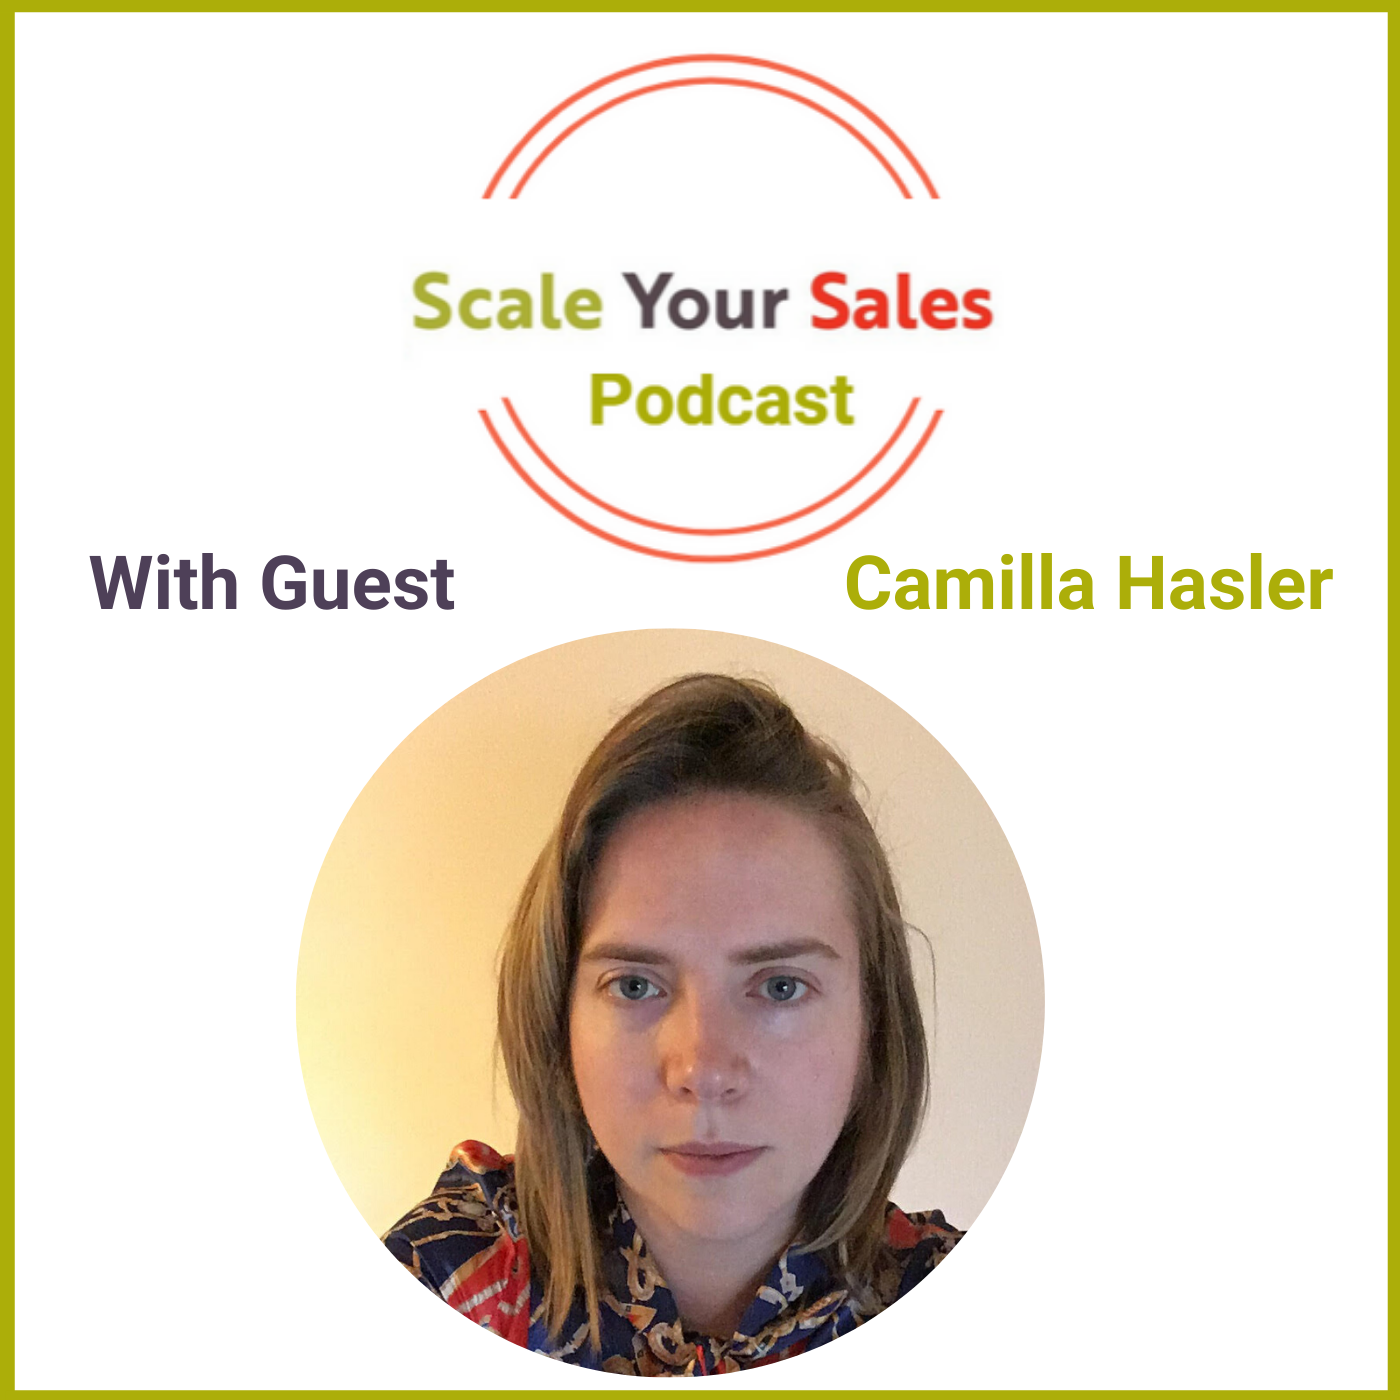 Episode 013 - Camilla Hasler Assumptions Don't Sway Investors or Customers